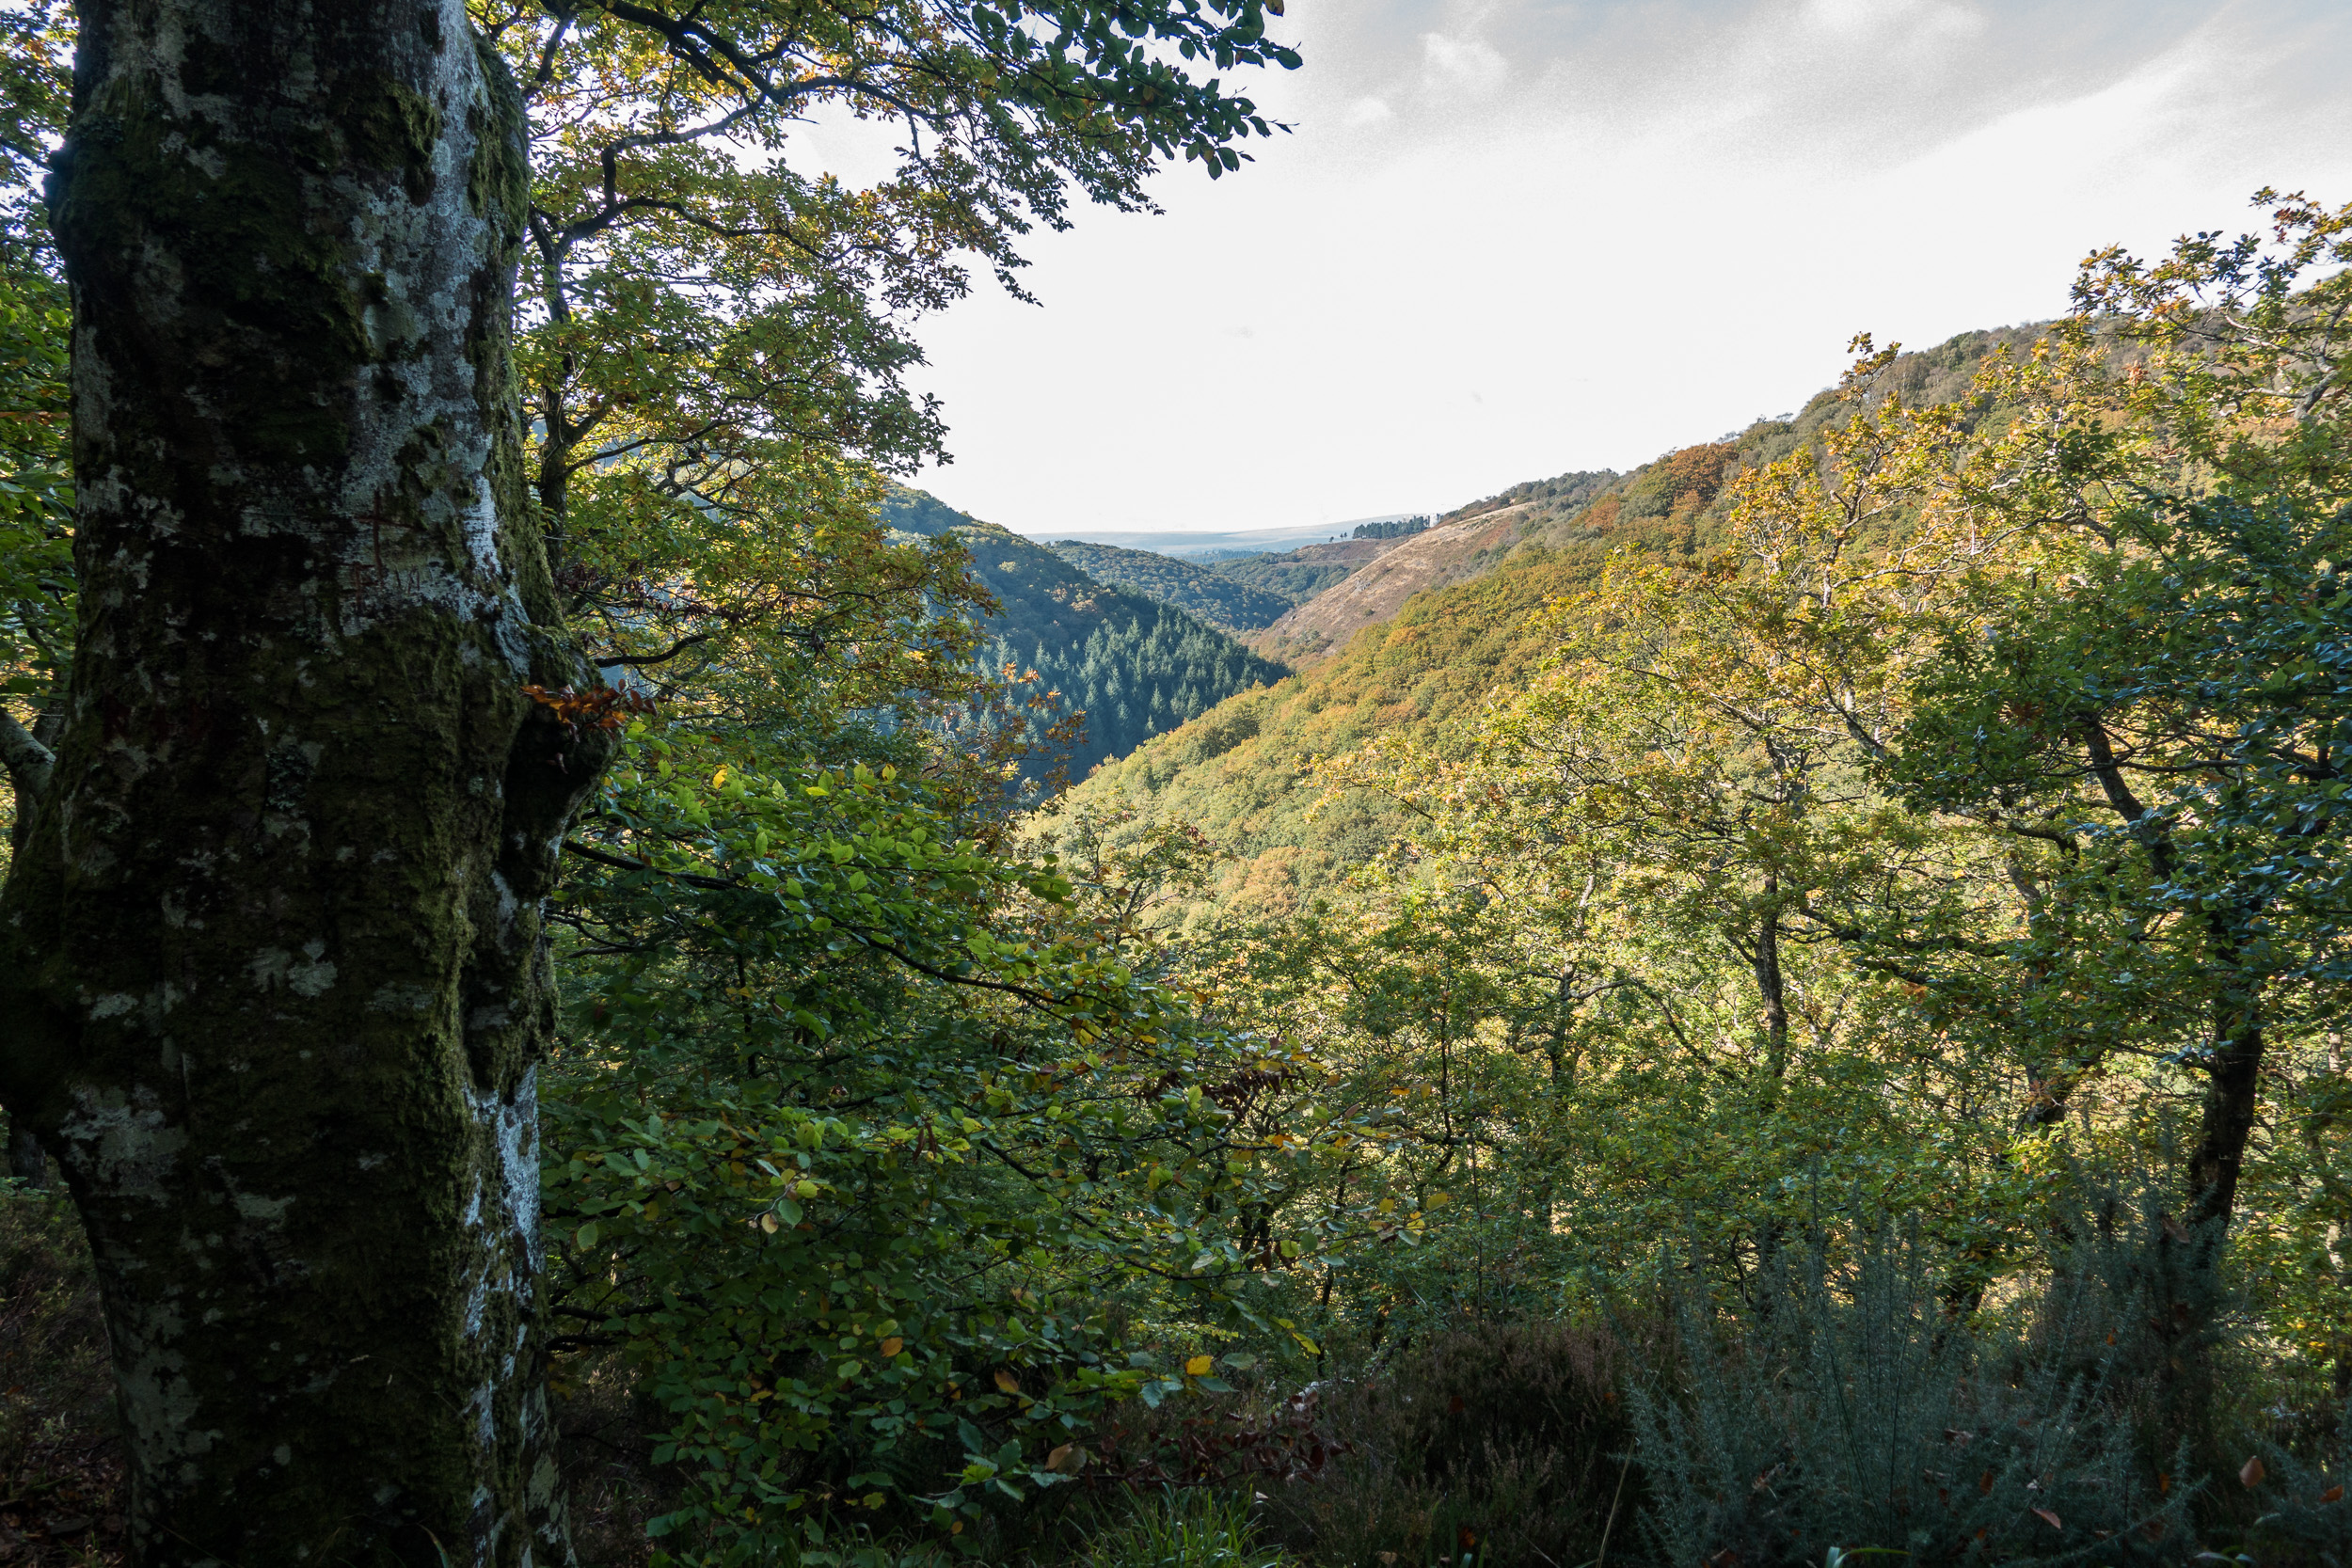 The Teign Valley - a place I love to photograph.